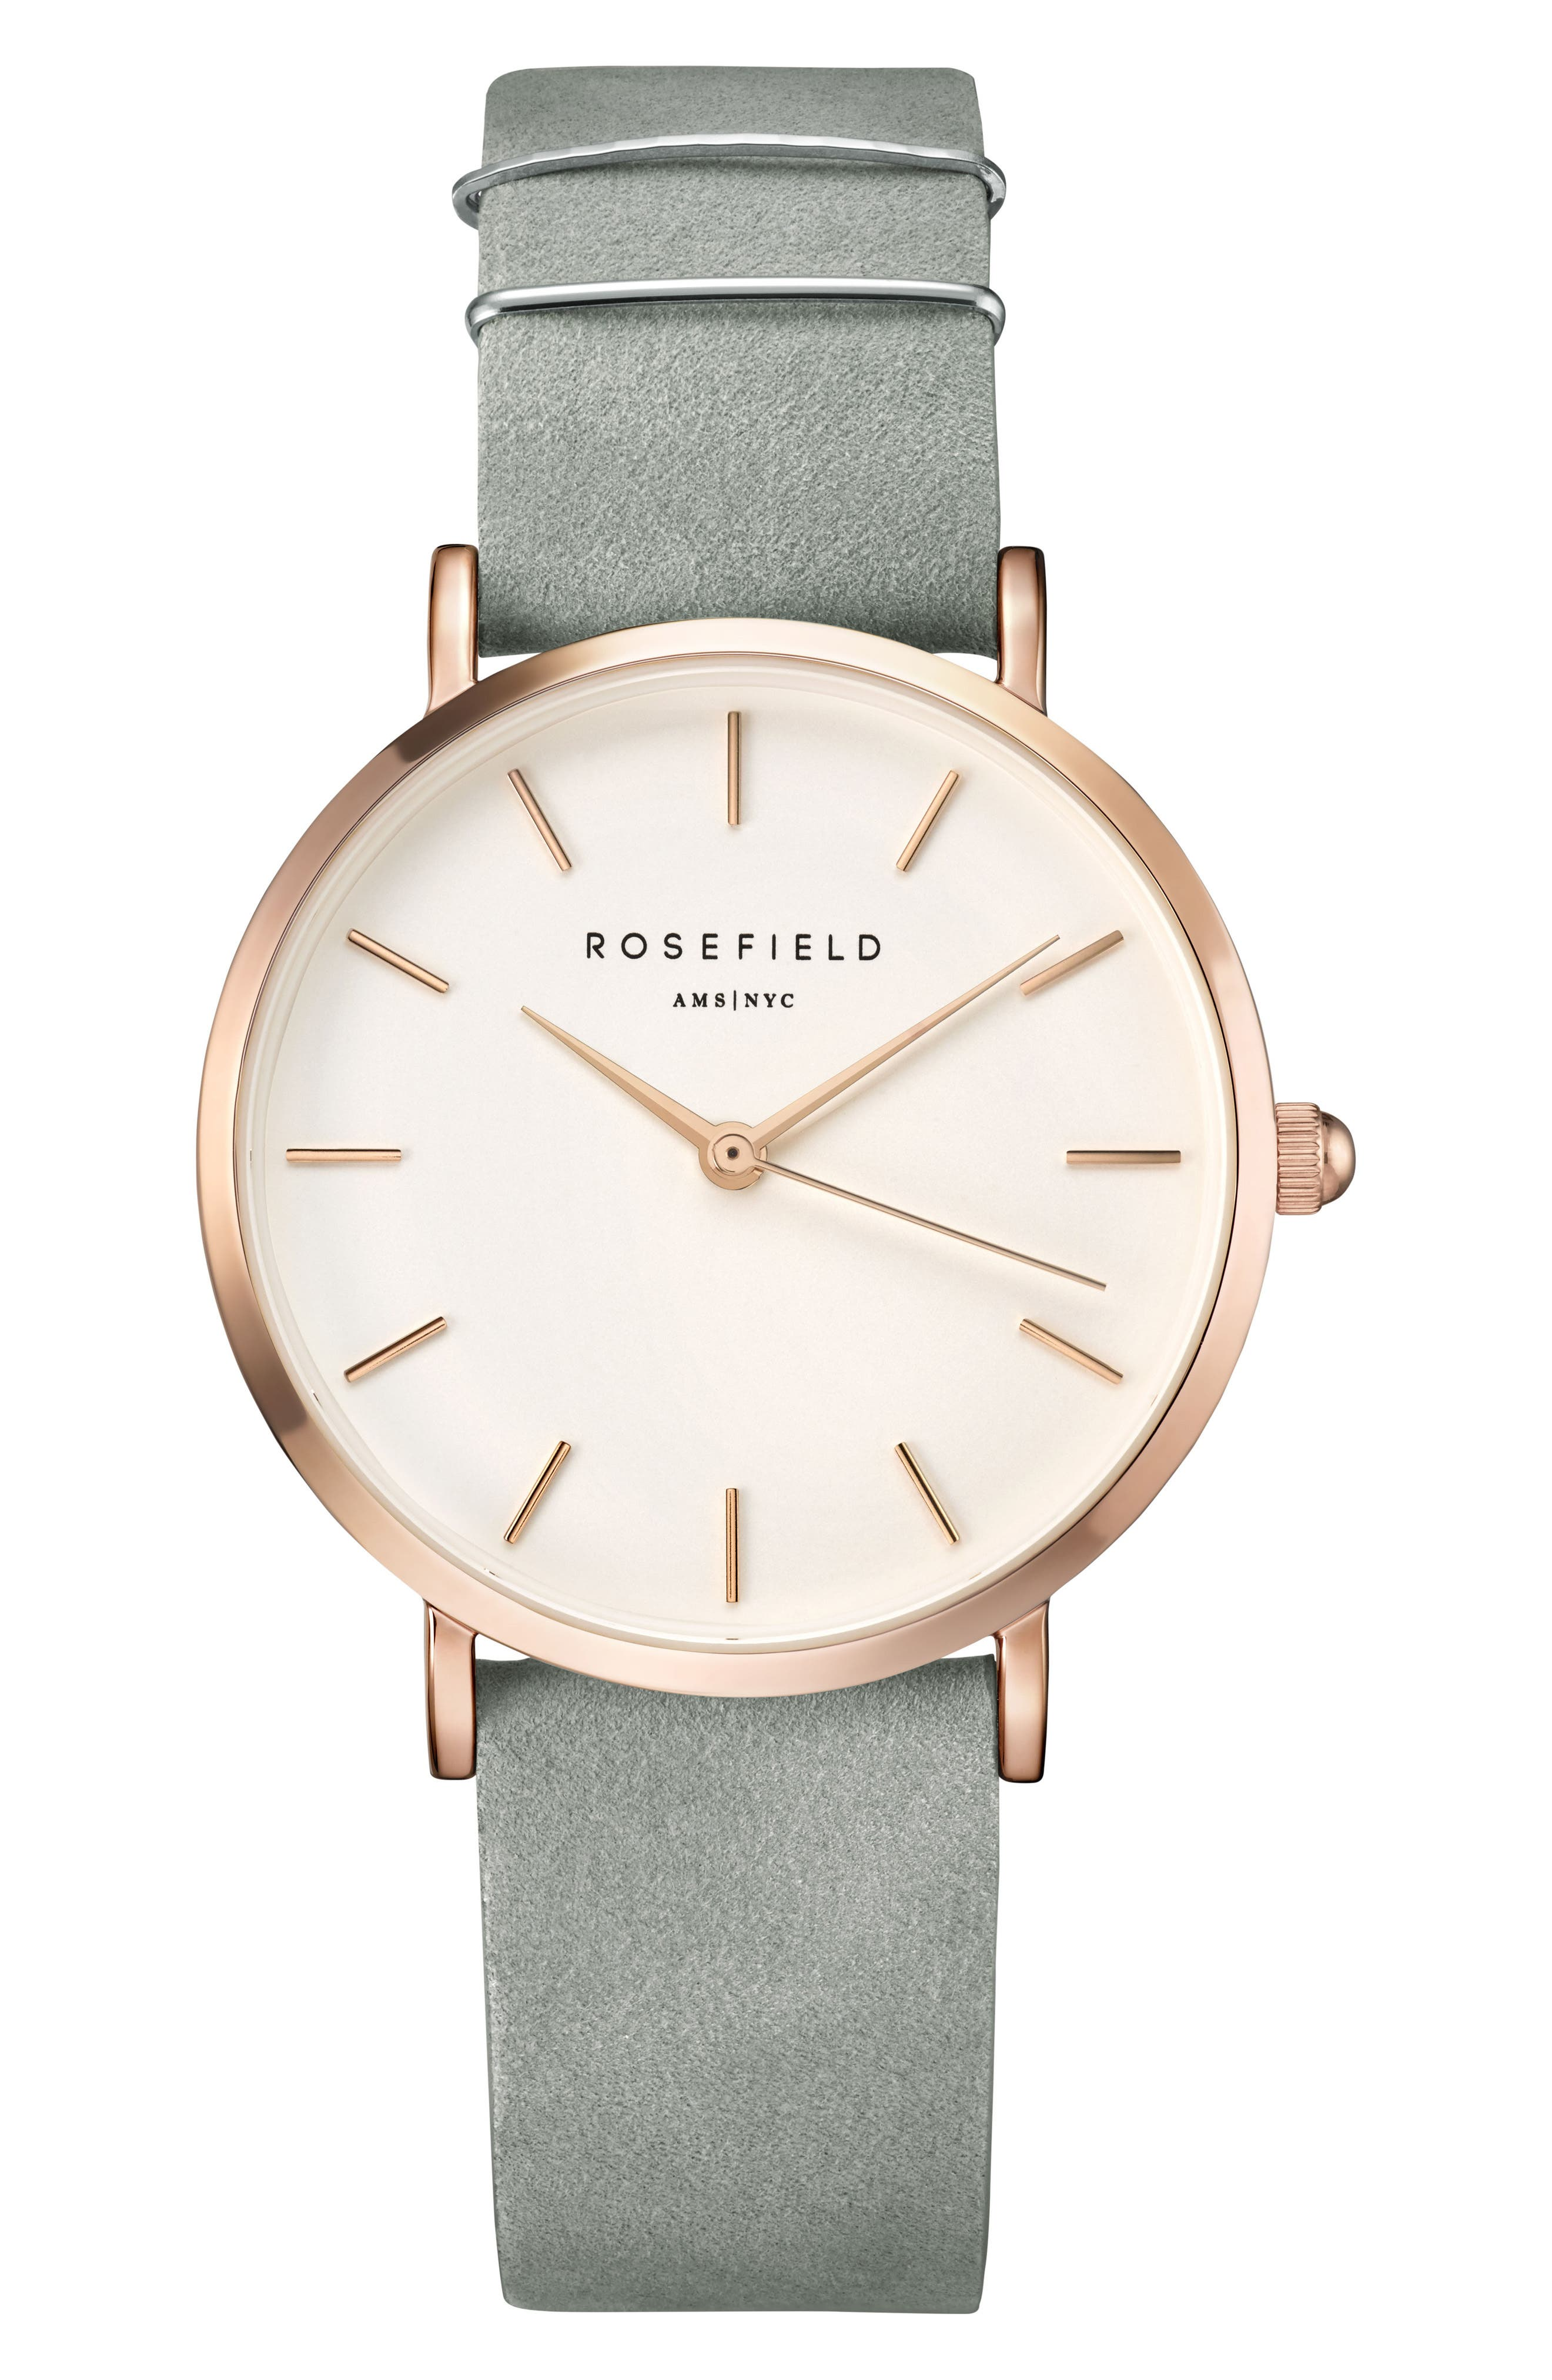 West Village Leather Strap Watch, 33mm,                             Main thumbnail 1, color,                             MINT GREY/ WHITE/ ROSE GOLD